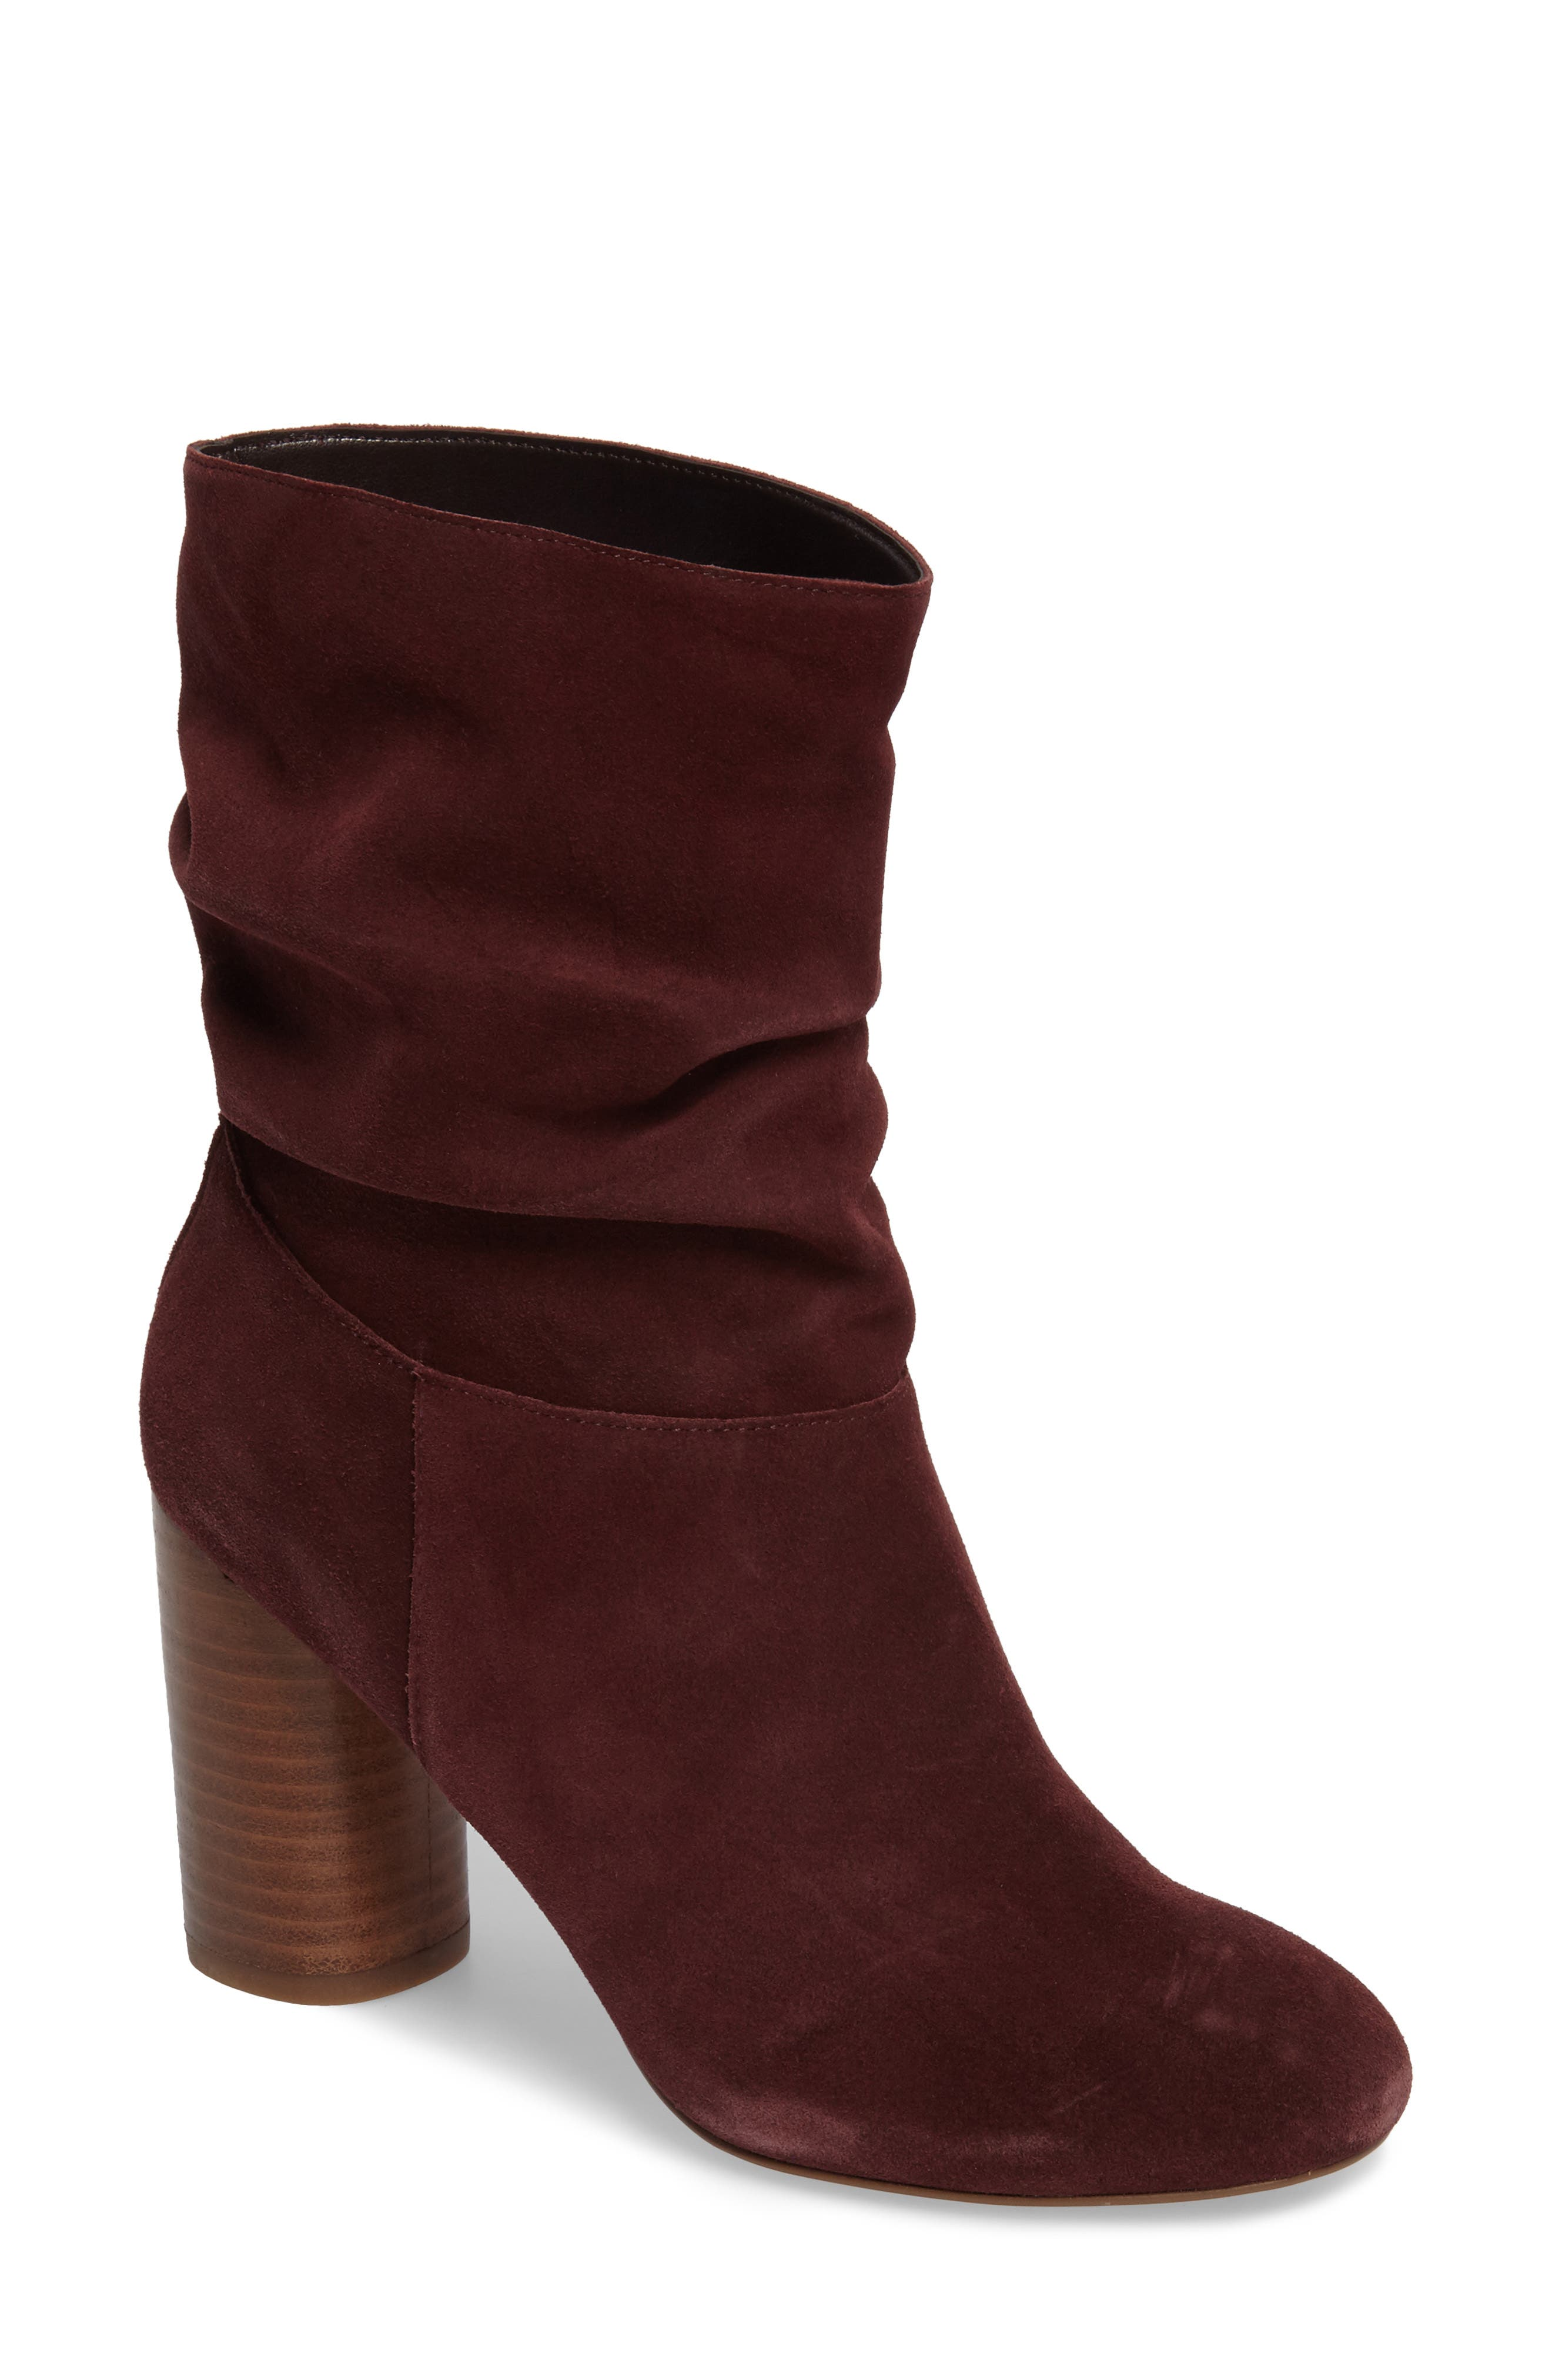 Alternate Image 1 Selected - Sole Society Belen Slouchy Bootie (Women)